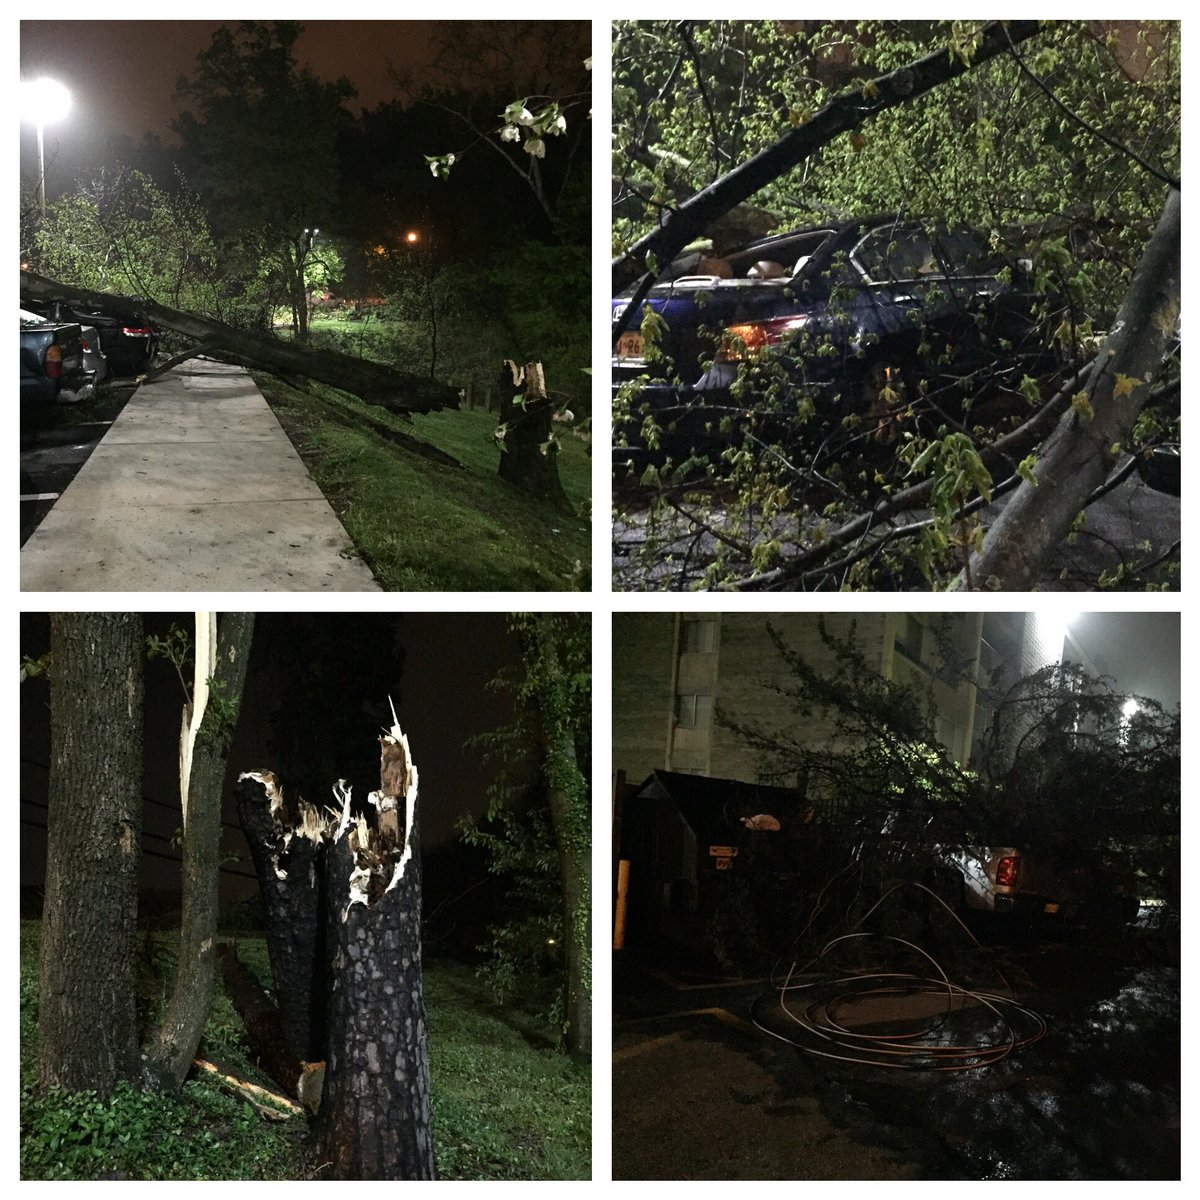 Several large trees down &amp; cars damaged on Greenspire Terrace in #Adelphi. @MikeTFox5 says radar indicated 40-50mph winds. @fox5dc<br>http://pic.twitter.com/Ih8dNSZNob